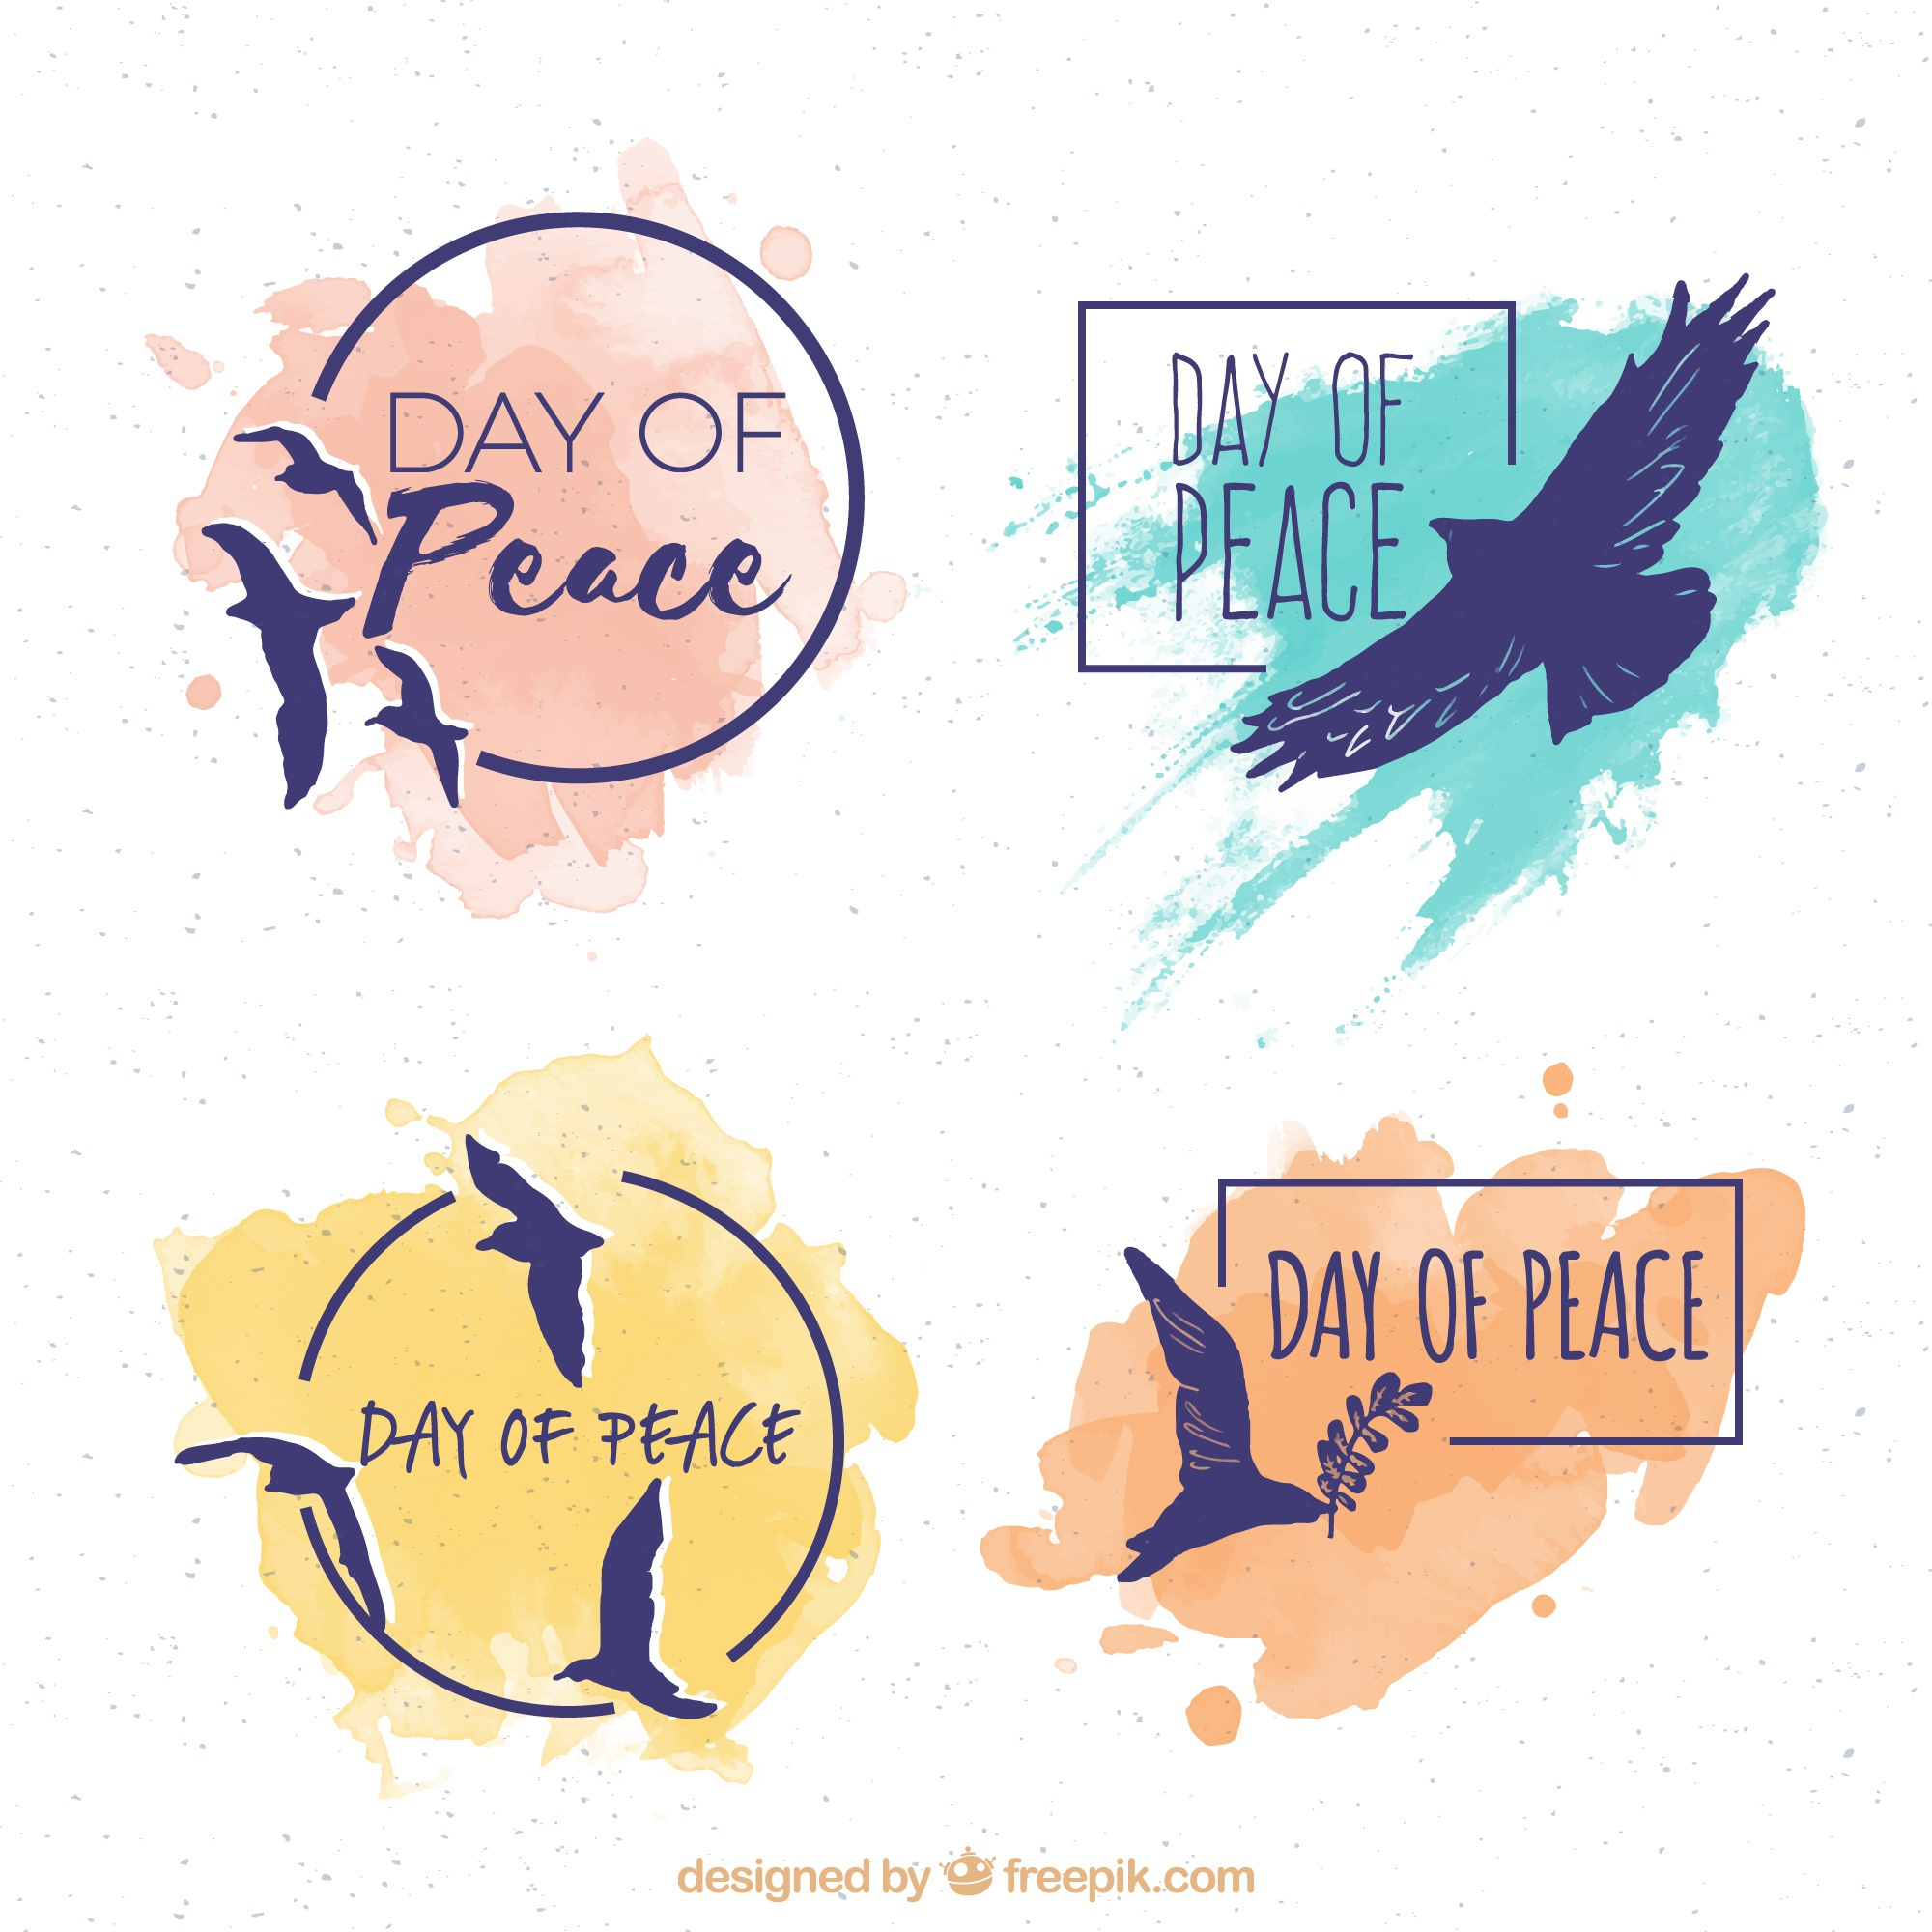 Set of silhouettes stickers of doves with watercolor stains